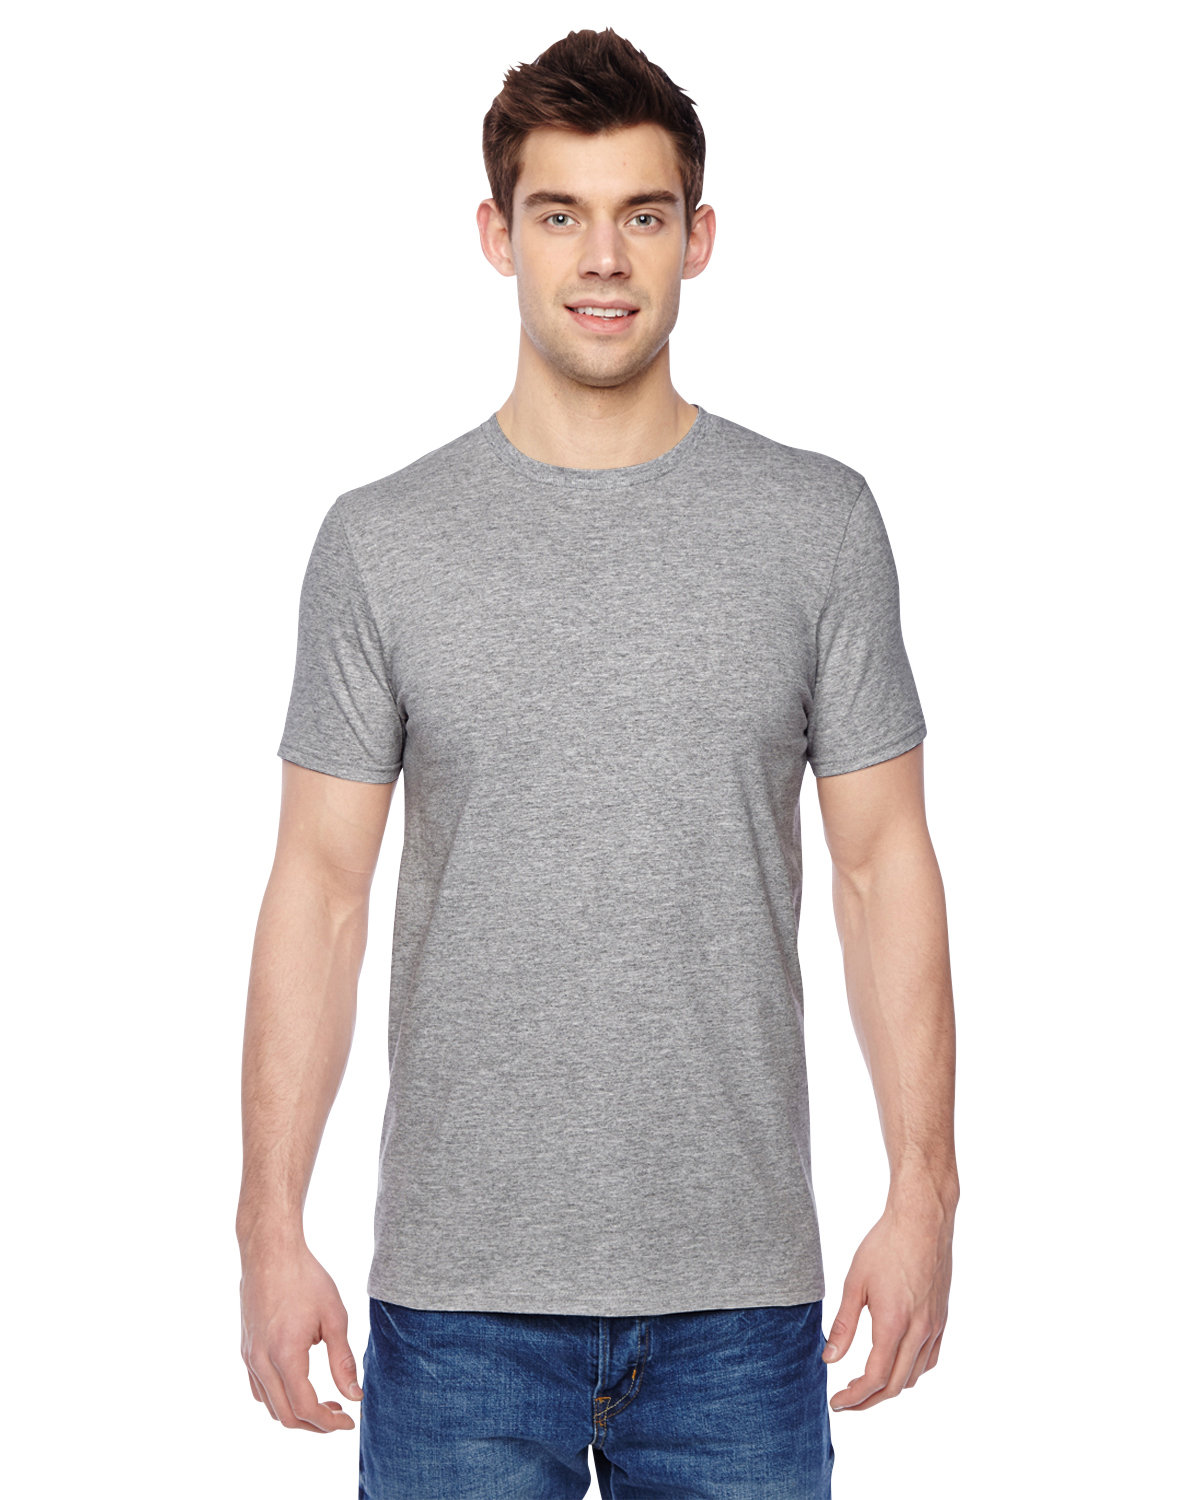 Fruit of the Loom Adult Sofspun® Jersey Crew T-Shirt ATHLETIC HEATHER